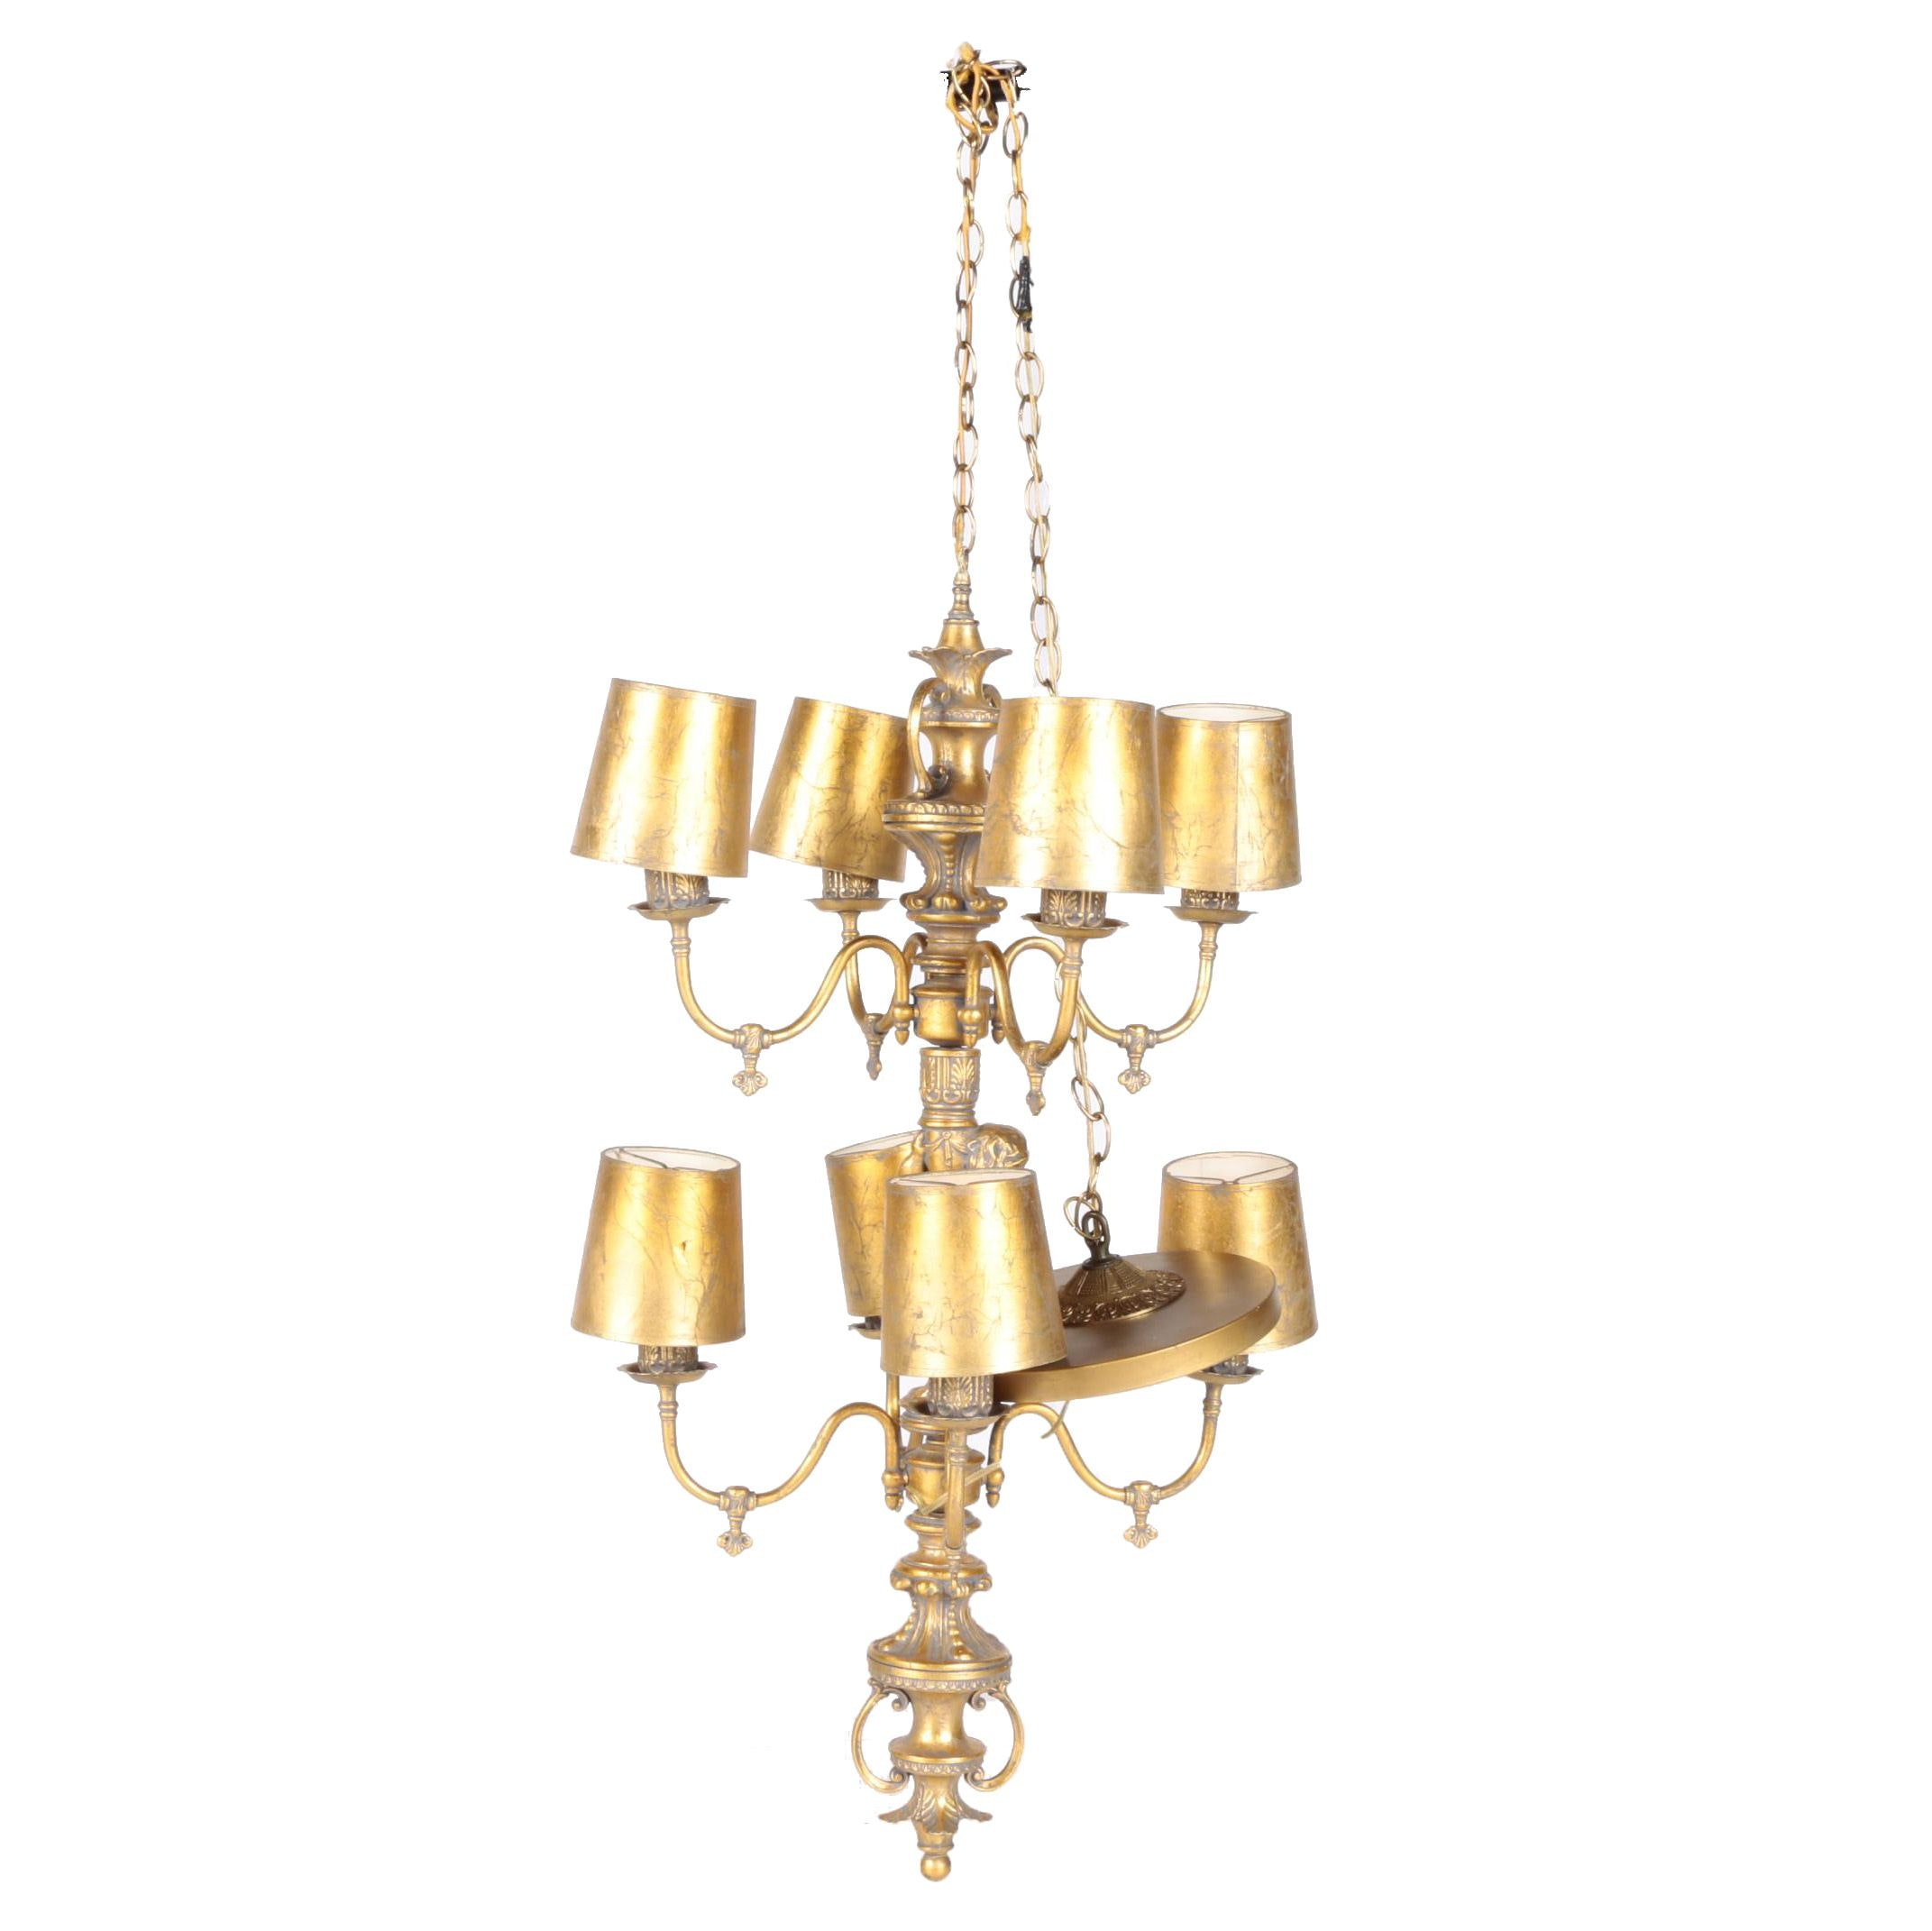 Ornate Gold Tone Chandelier With Putto Figural Stem